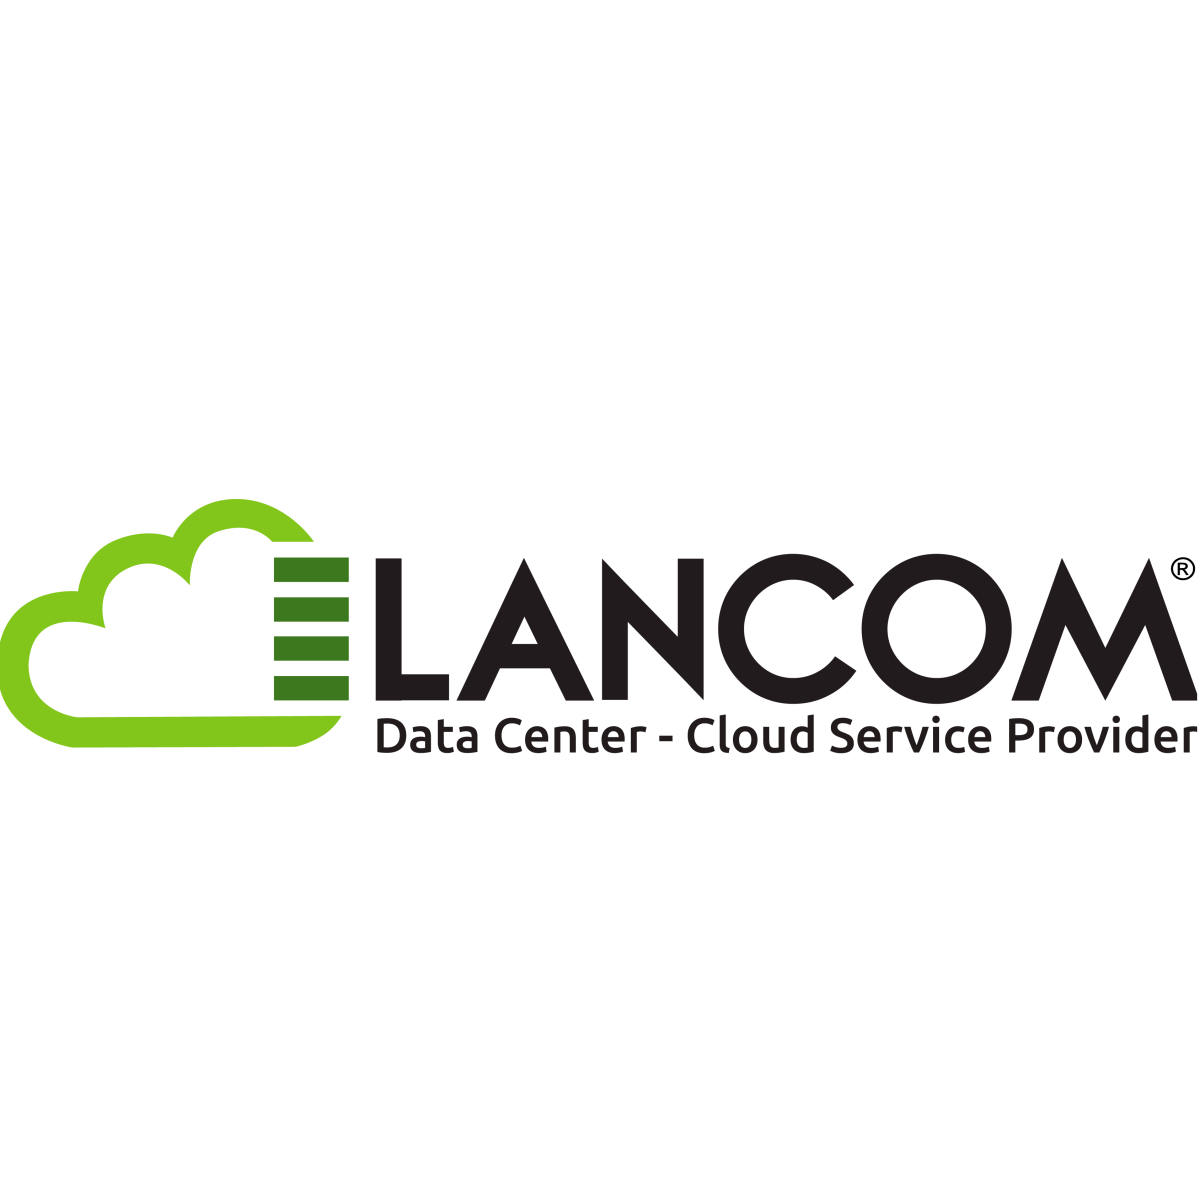 Lancom - Data Center & Cloud Service Provider